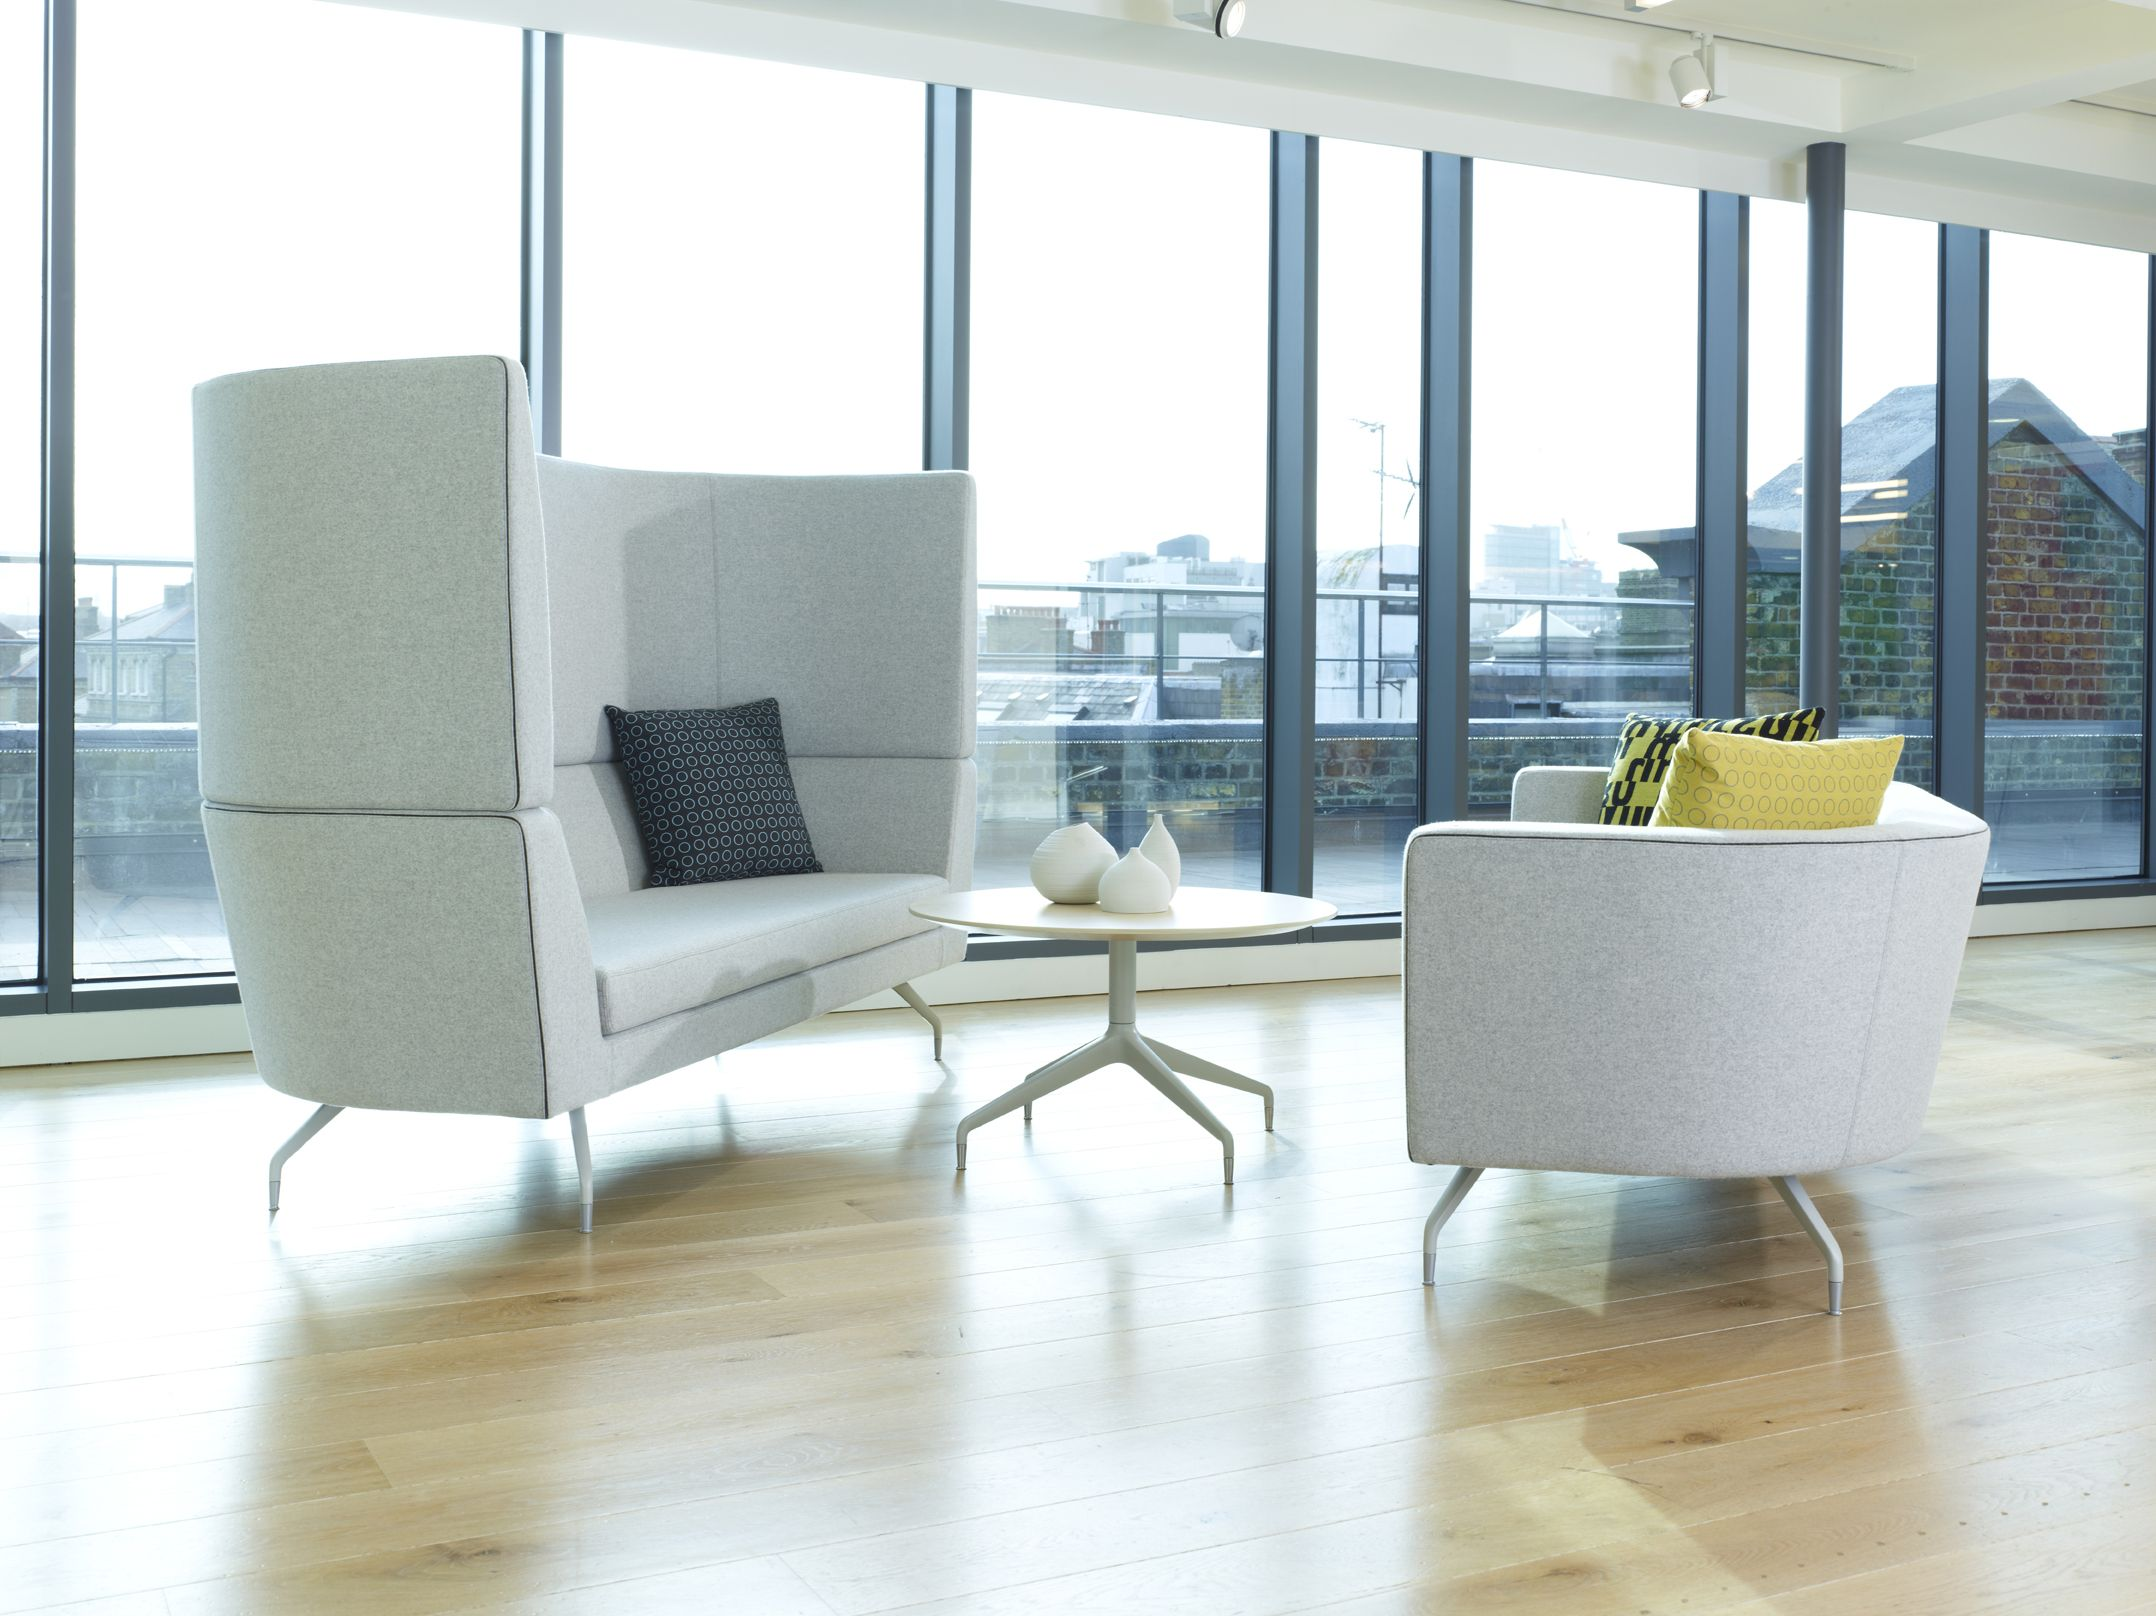 Modular Living Room Furniture Uk 127 Best Images About Breakout Collaborative Spaces On Pinterest